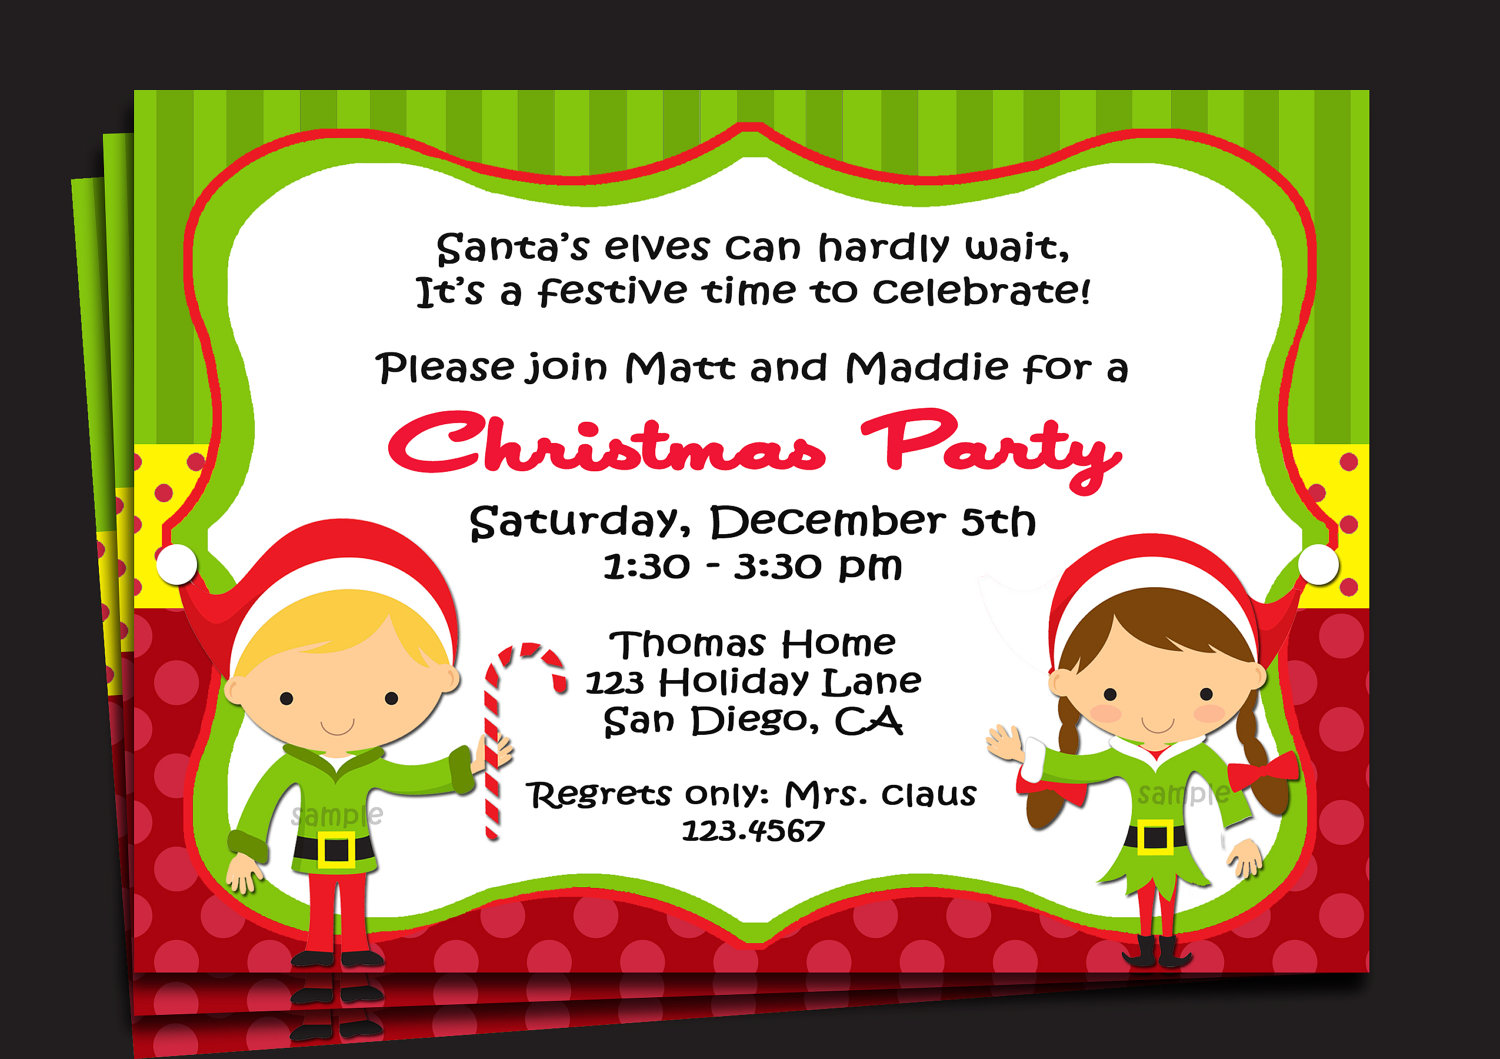 doc 700434 christmas office party invitation templates office invitations for christmas party mickey mouse invitations templates christmas office party invitation templates